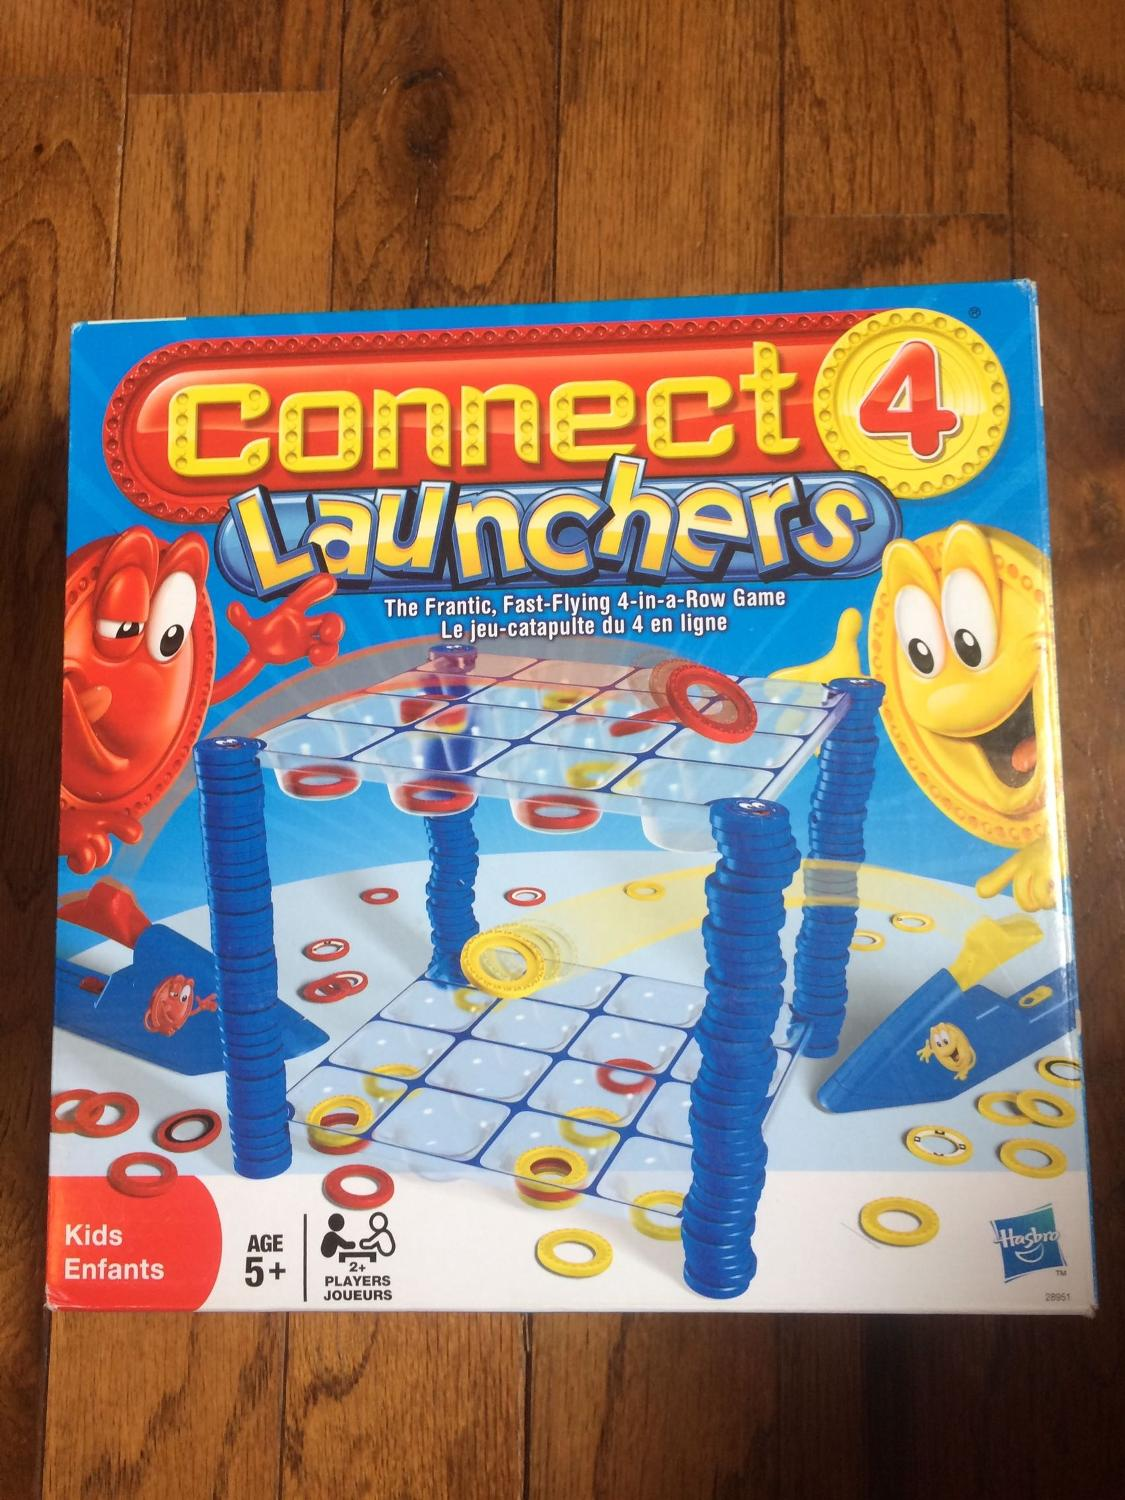 how to play connect 4 launchers